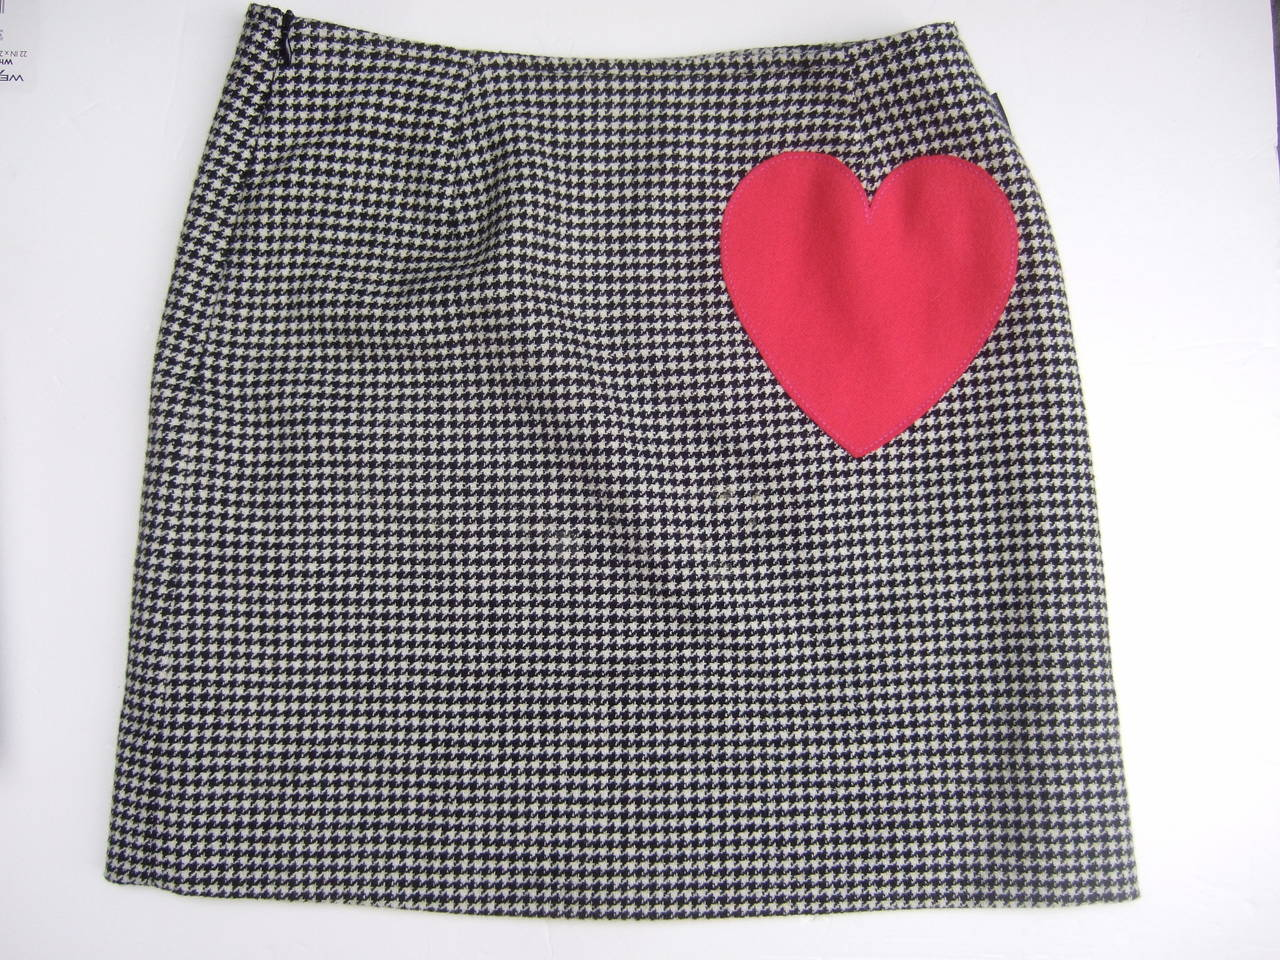 Moschino Mod Op Art Lolita Hounds Tooth Wool Skirt US Size 8 Made in Italy 5